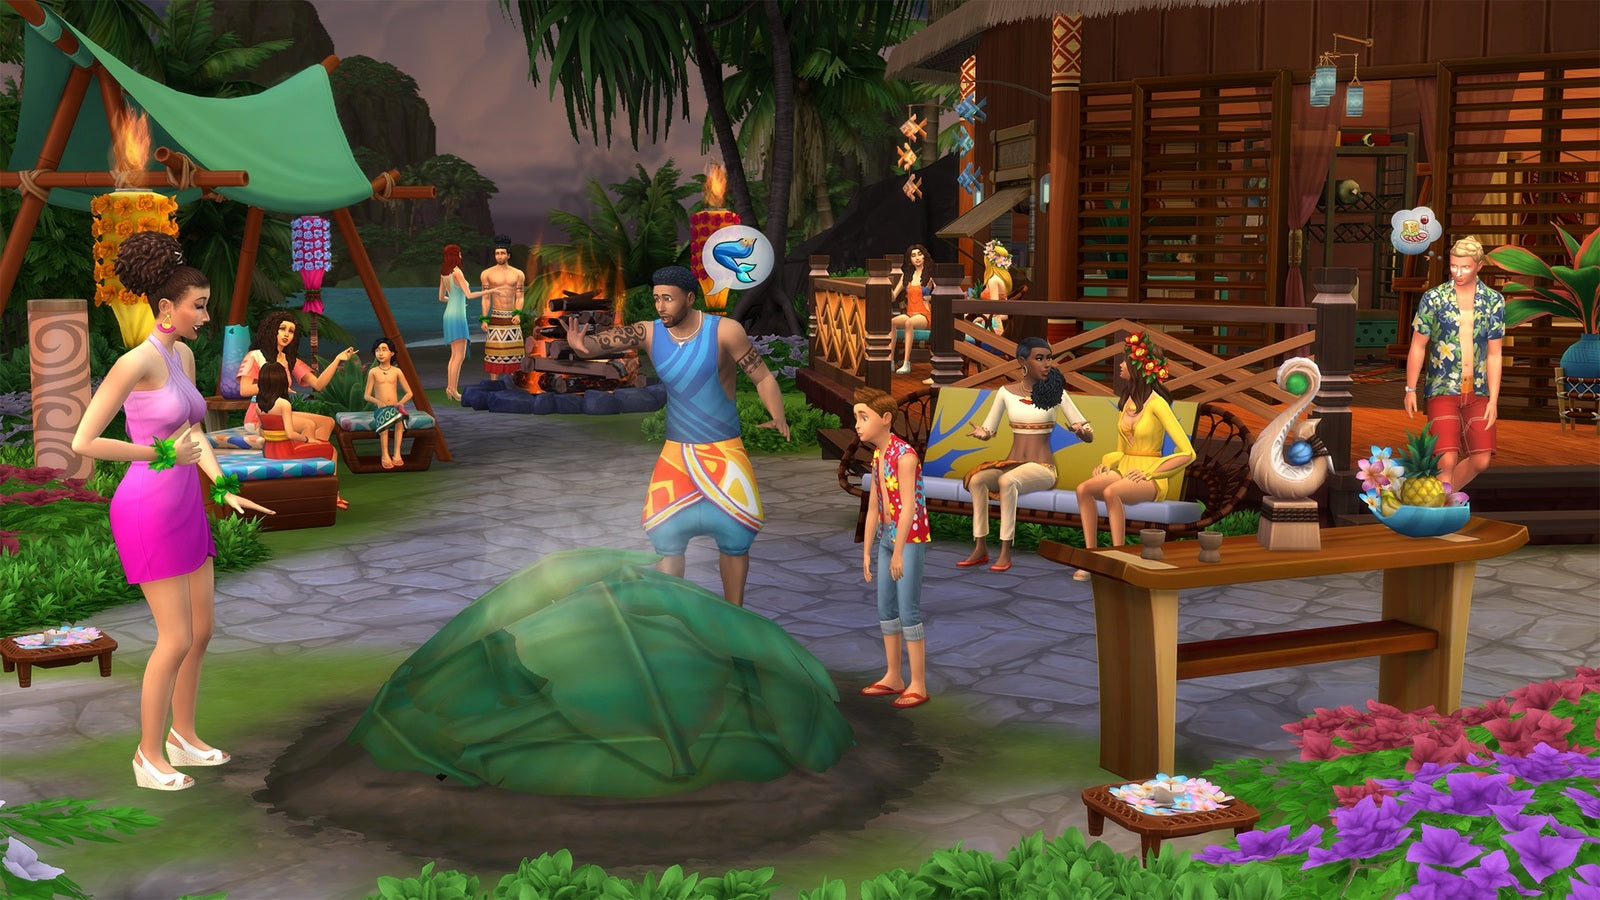 The Sims 4 Island Living (code in box) - PC Games